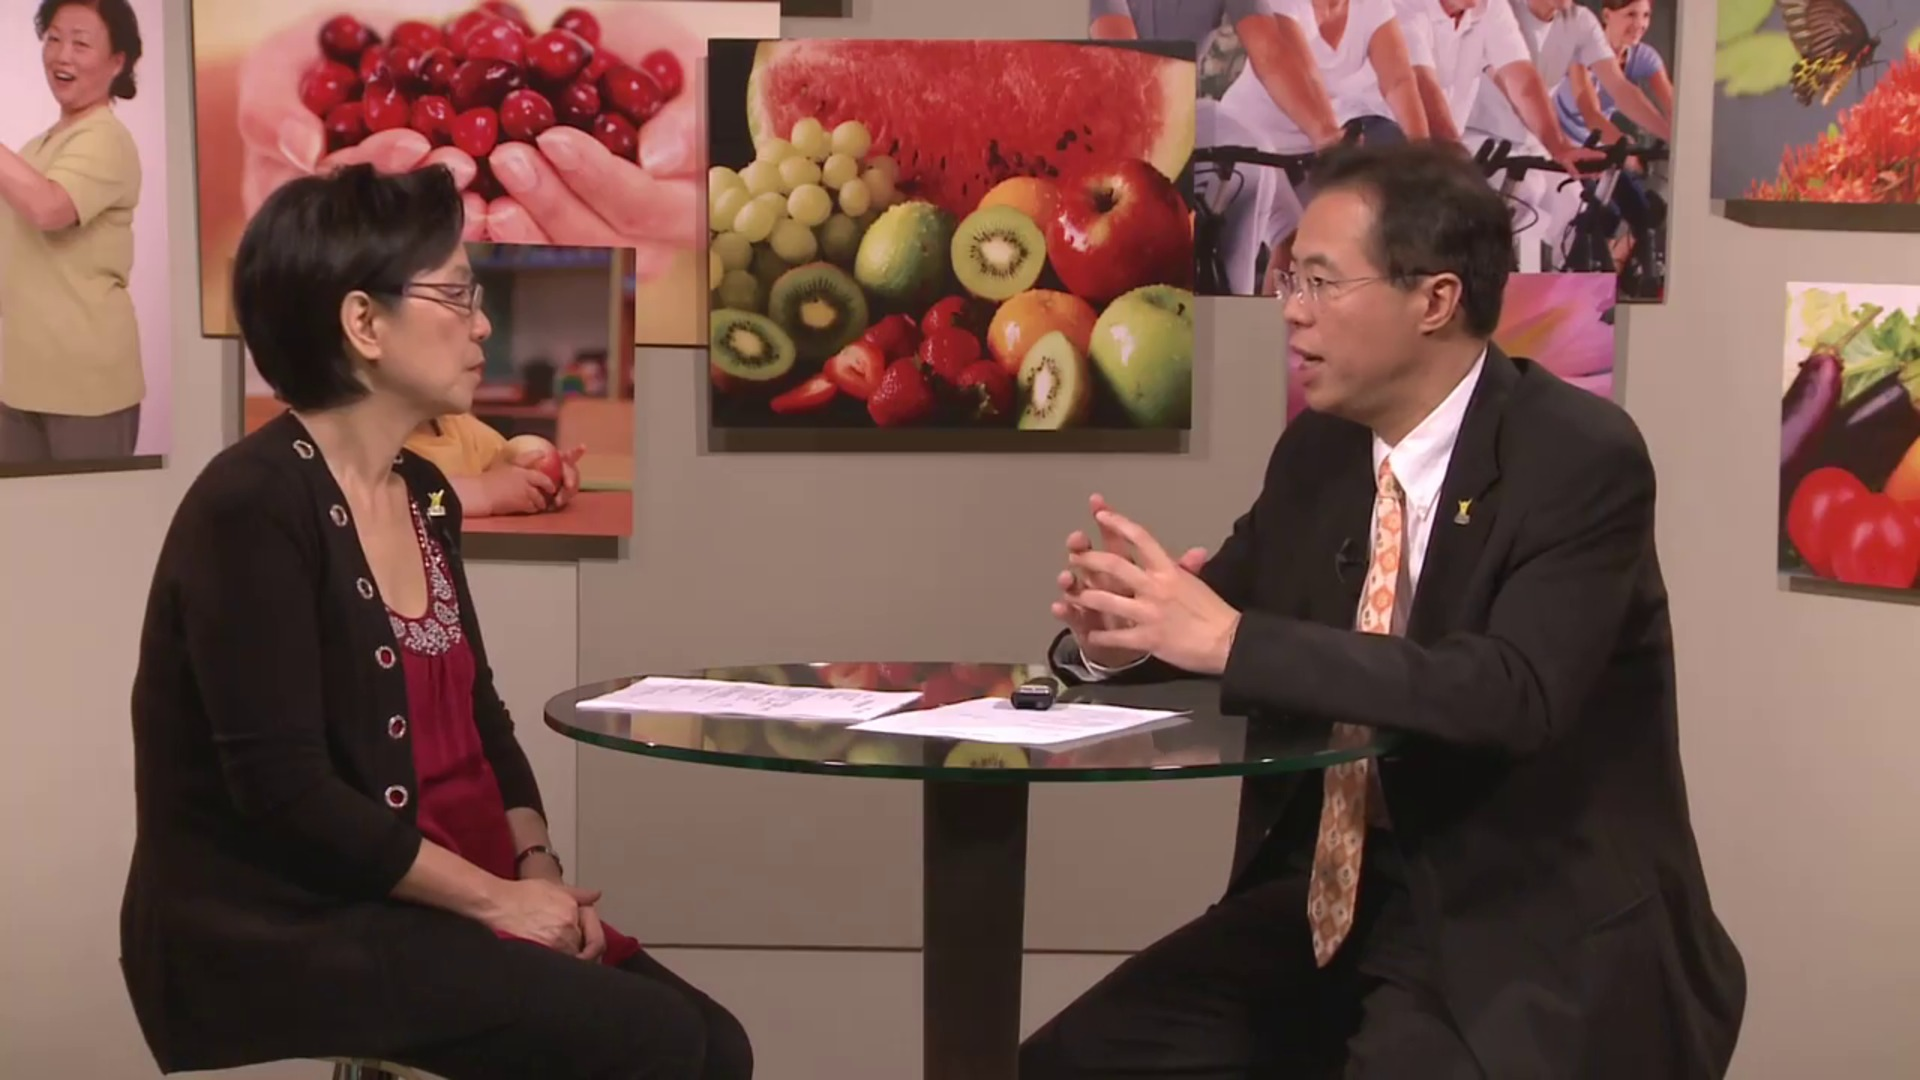 Ep 3 - 冠心病:预防胜于治疗 Coronary Heart Disease: Prevention is better than cure